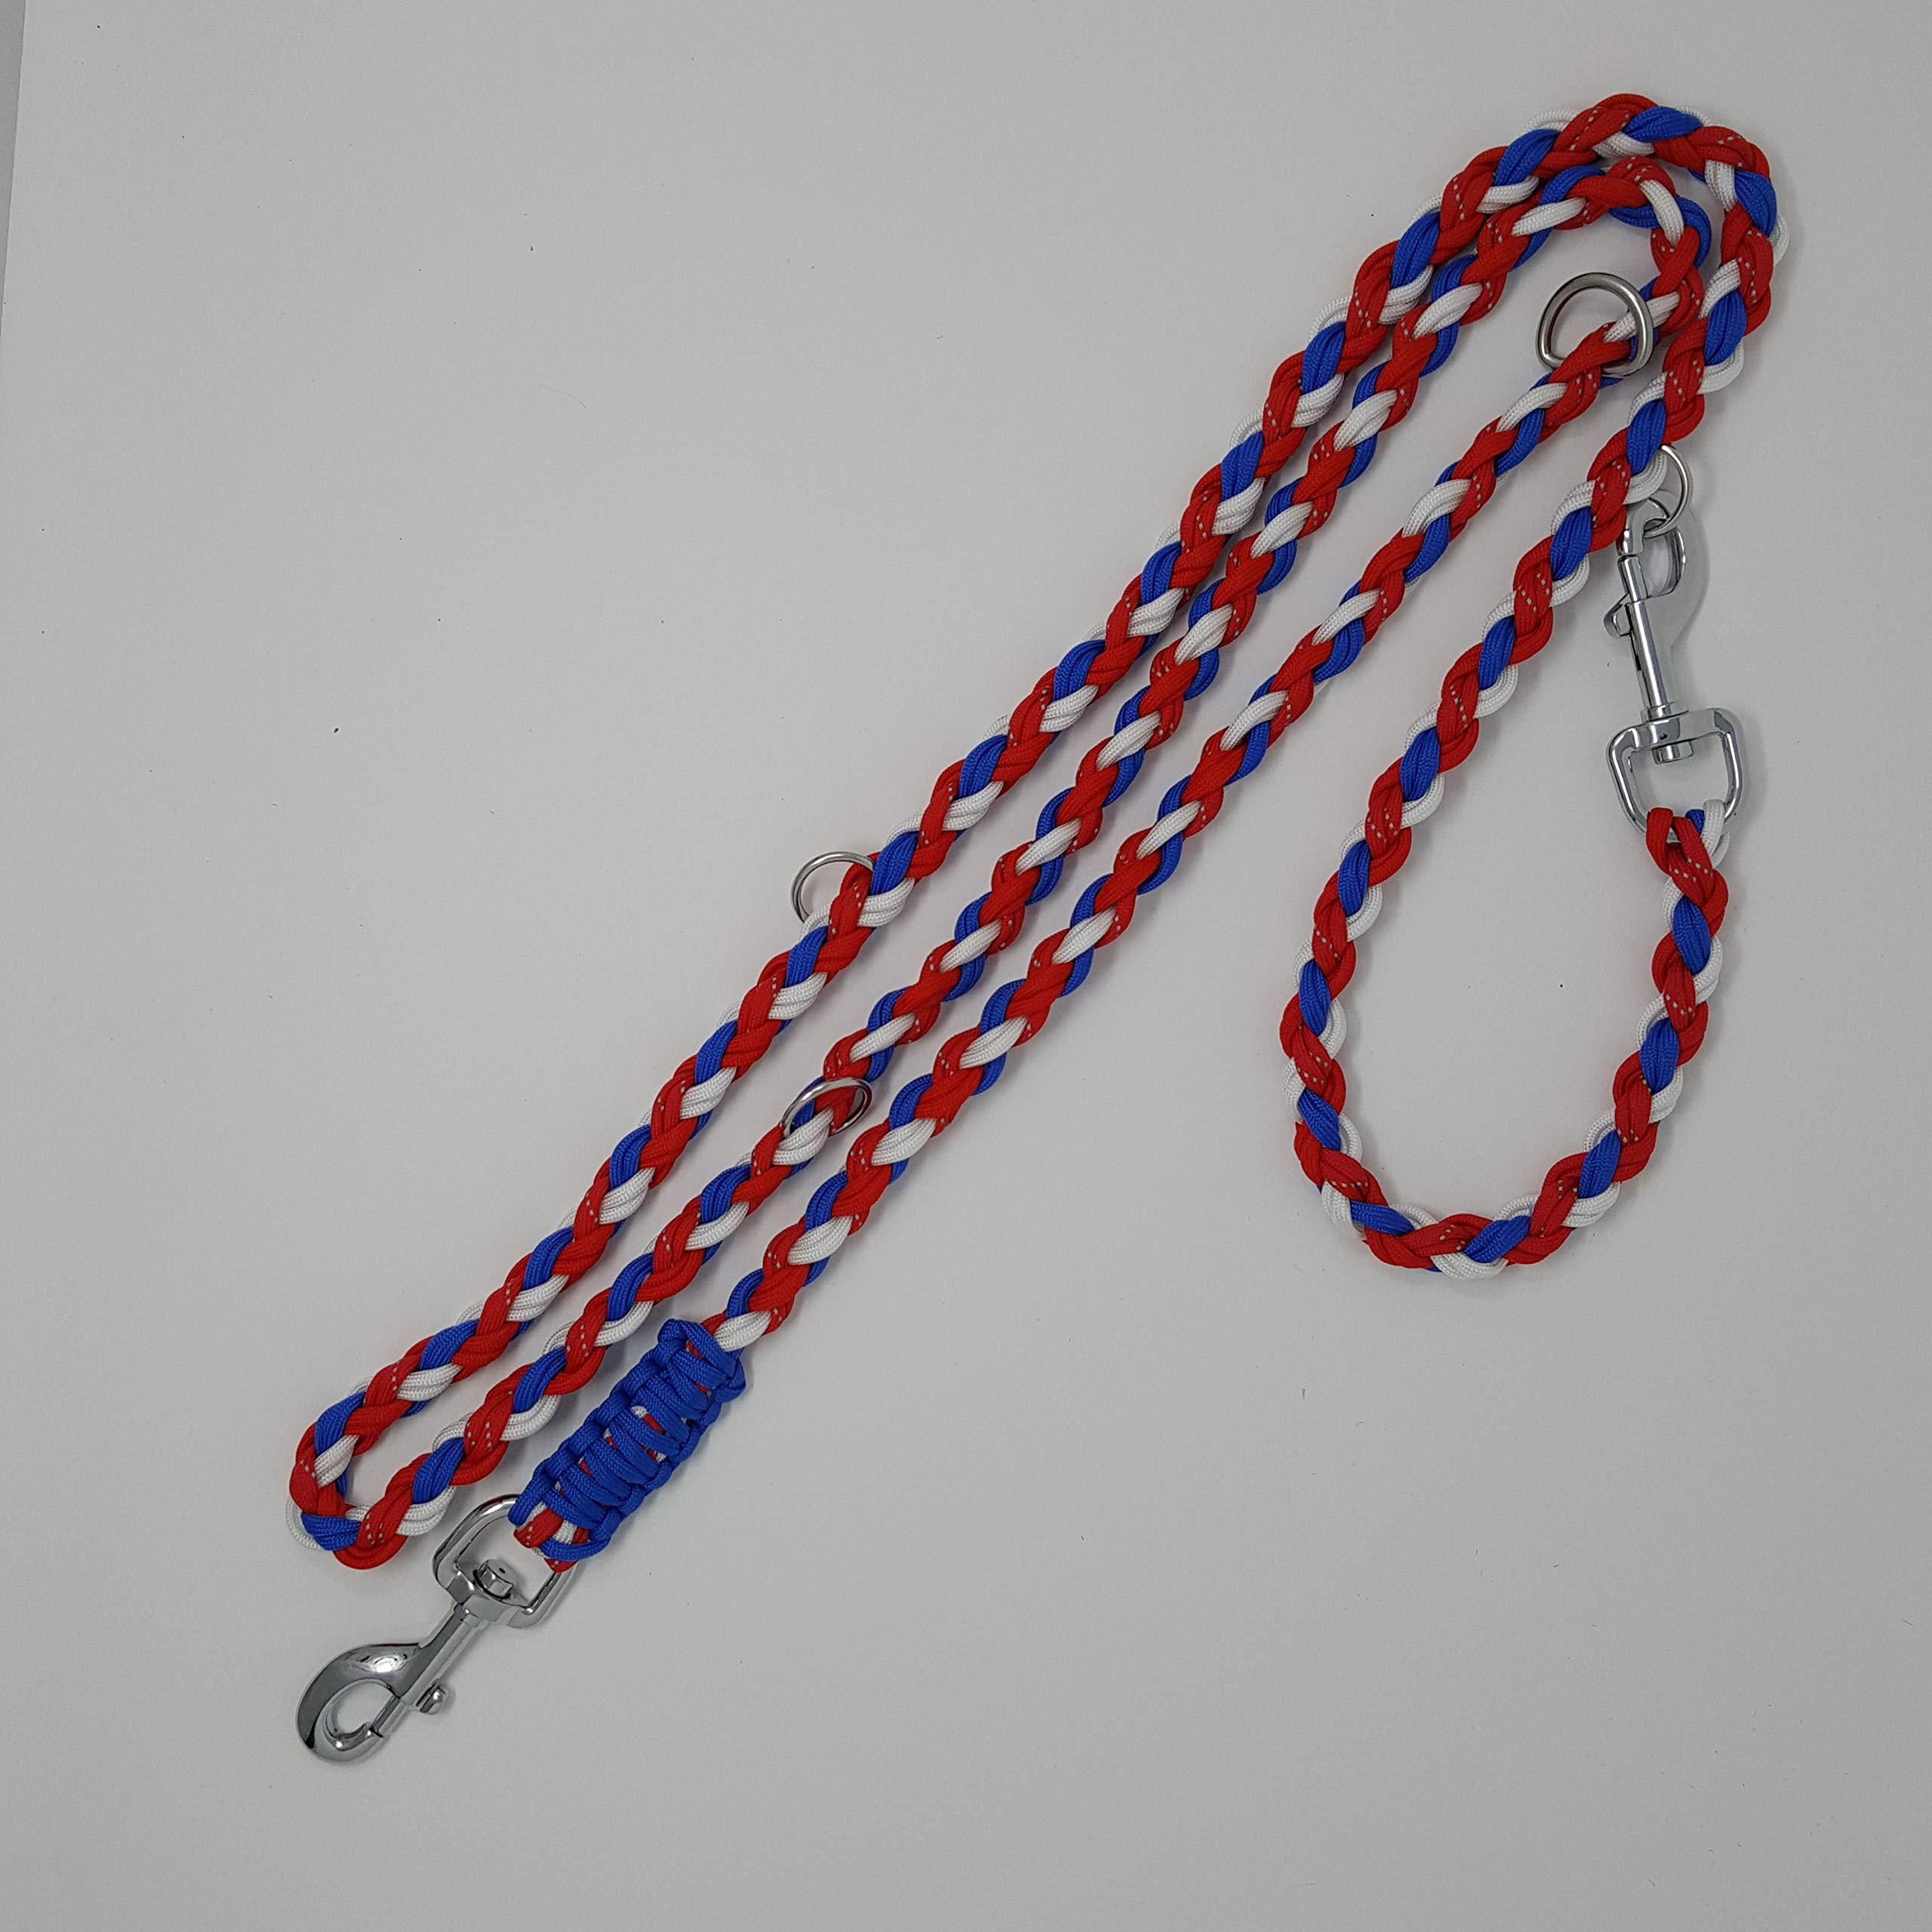 para Cord Double Ended Versatile Hands-Free Dog Walking or Training Leash (6 Foot Adjustable, Red/White/Blue/Reflective)